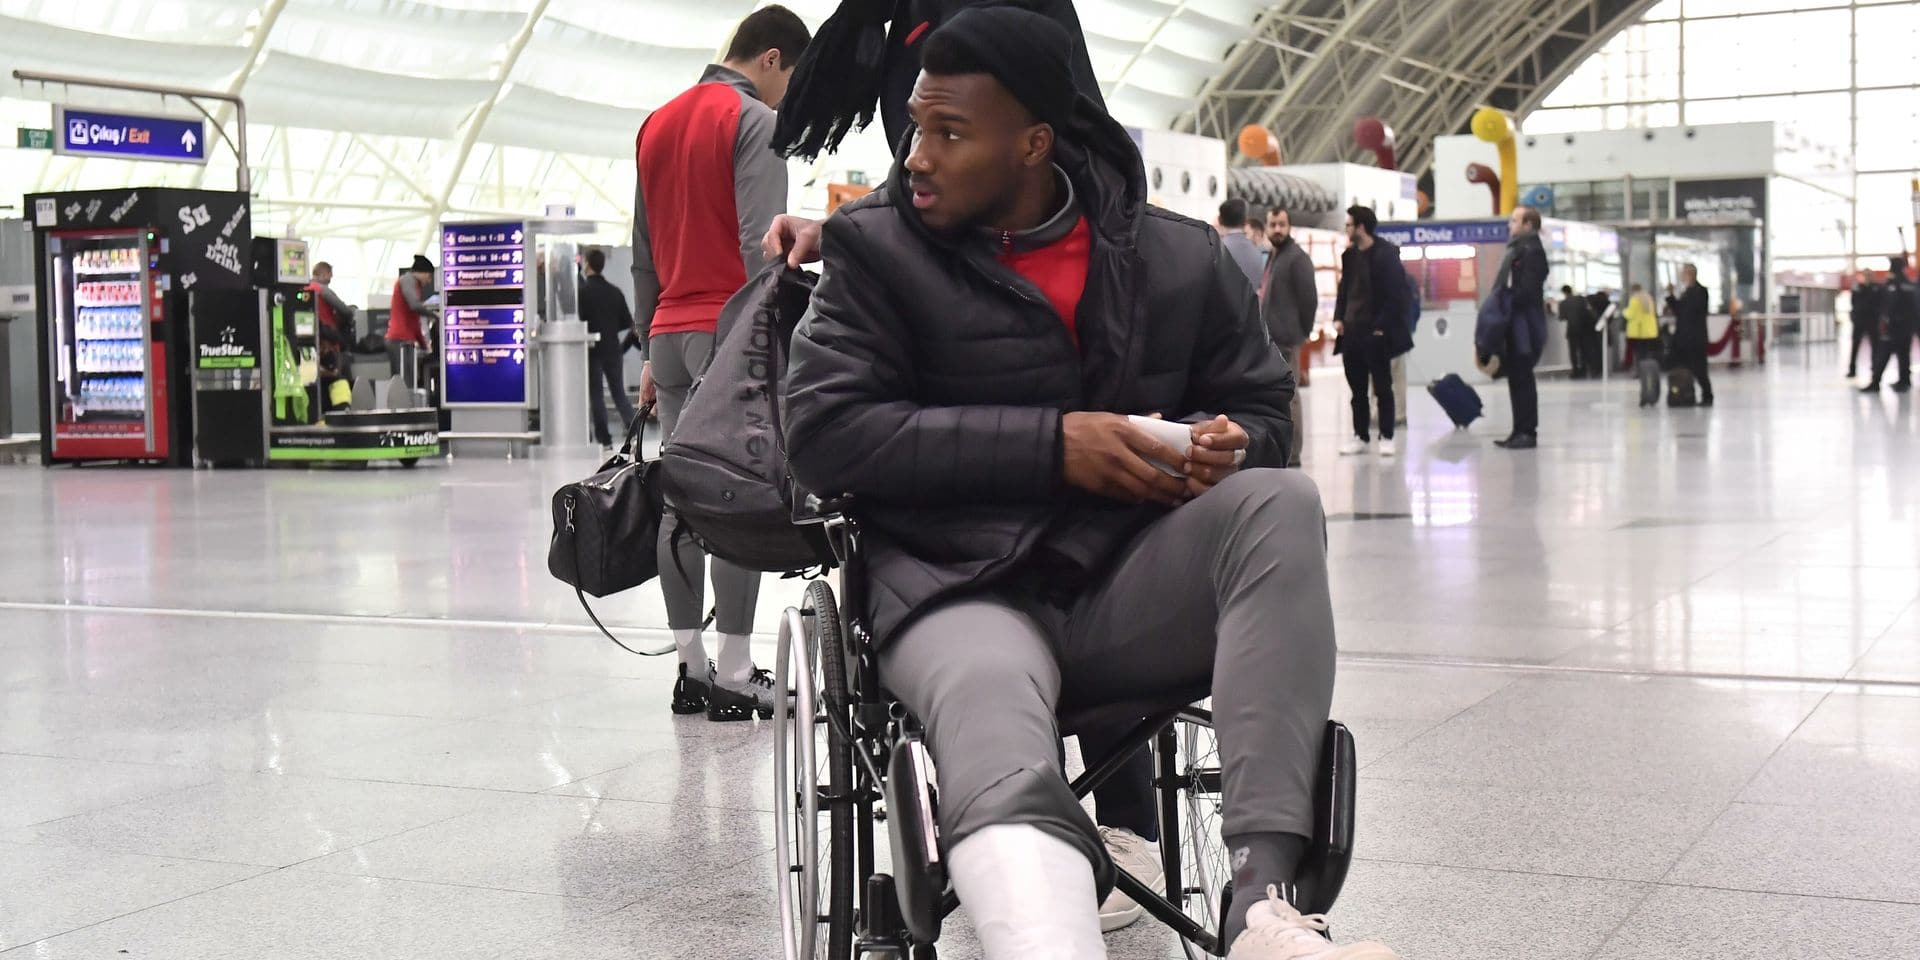 Standard's Obbi Oulare pictured with a plaster cast on his leg, at the airport in Izmir, Turkey Saturday 15 December 2018. Yesterday Belgian soccer team Standard de Liege played Turkish team Akhisar Belediyespor on day six of the Europa League group stage in group J. BELGA PHOTO LAURIE DIEFFEMBACQ